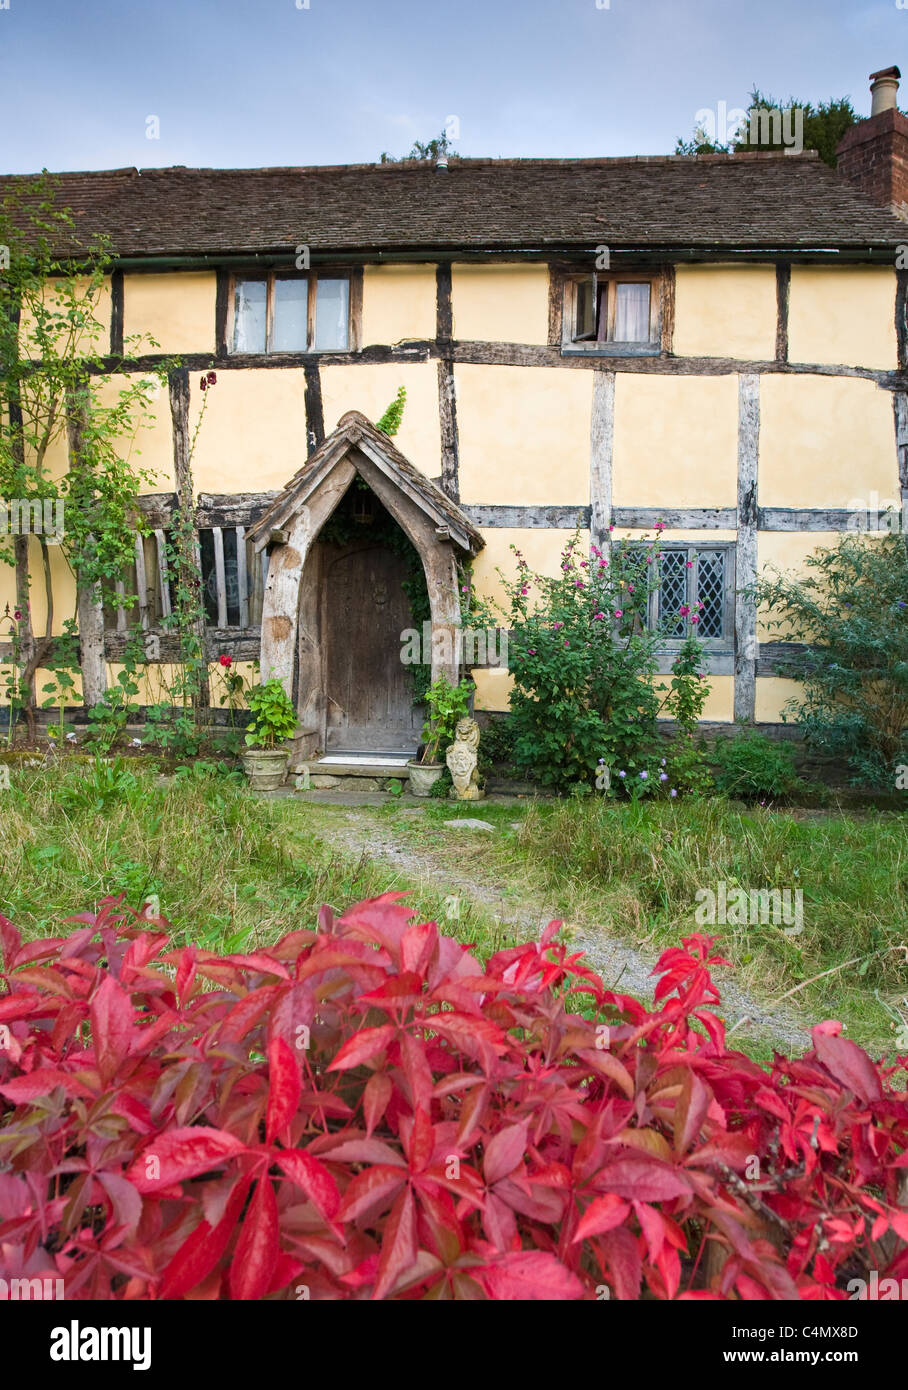 Quaint Tudor style half-timbered cottage at Eardisland, Herefordshire, UK - Stock Image